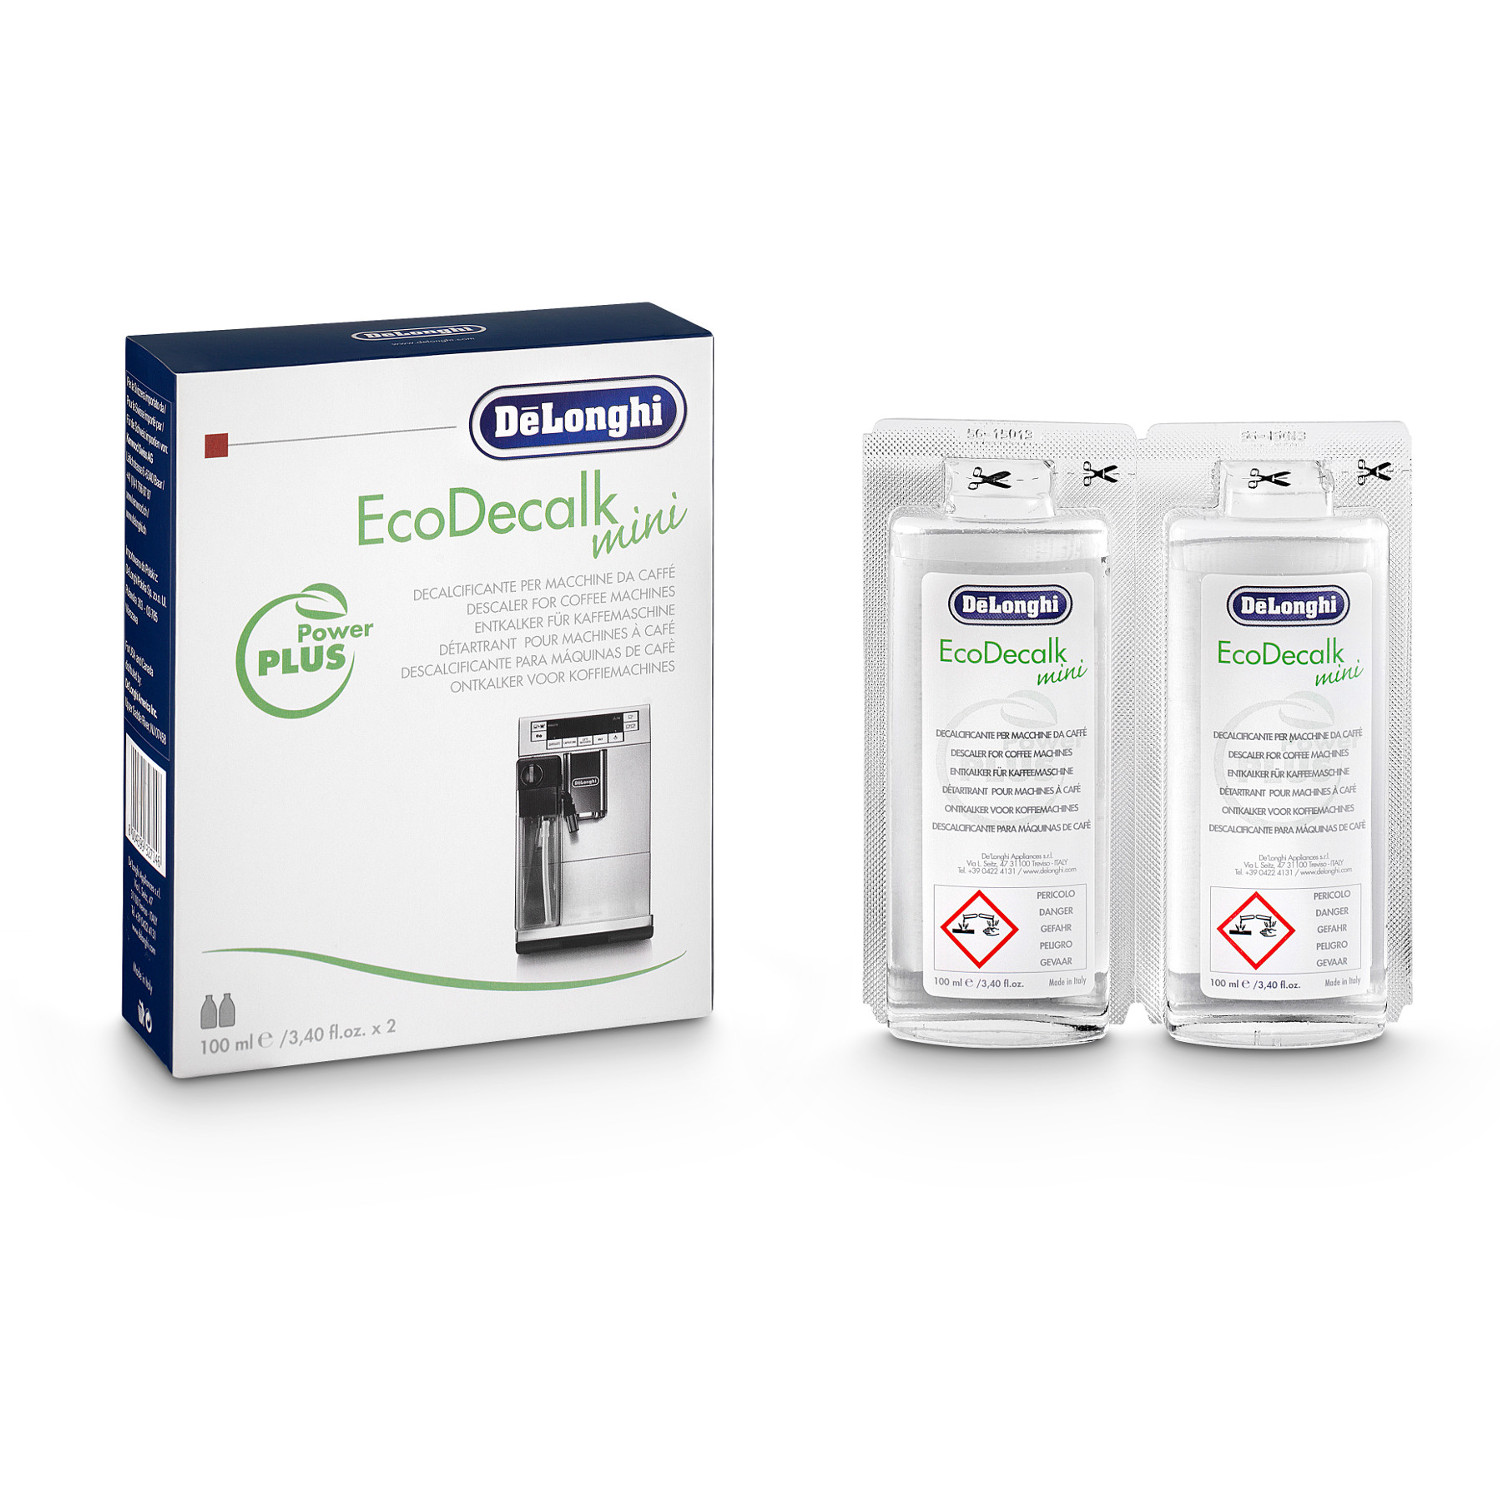 Braun Mini Descaling Solution, Pack of 2